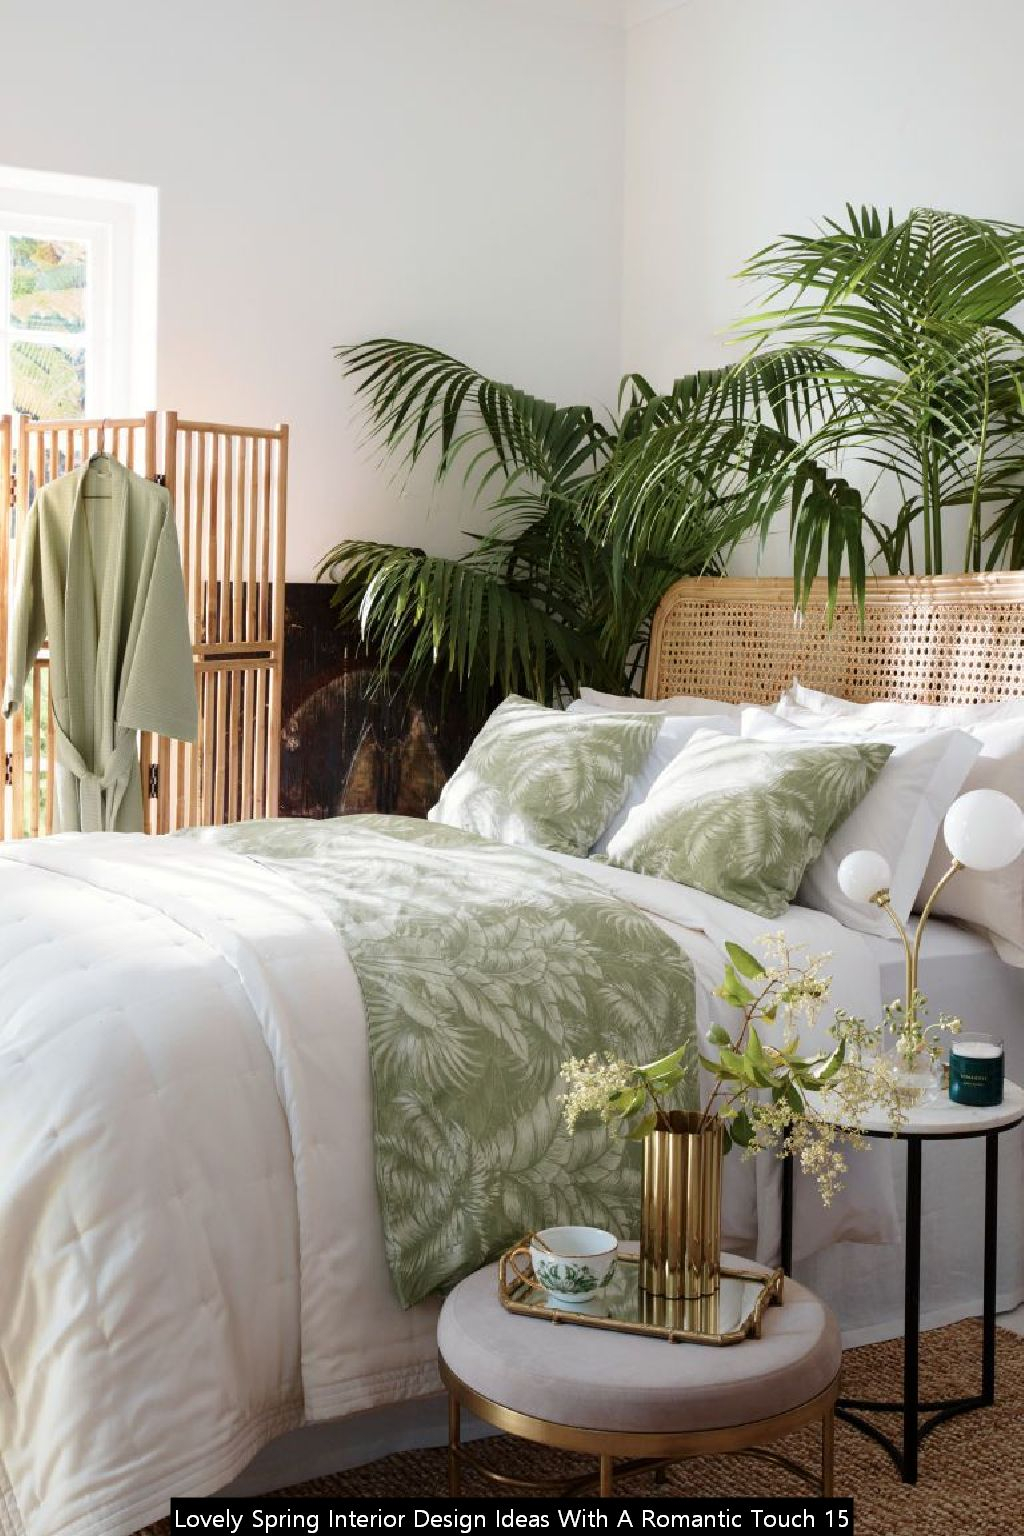 Lovely Spring Interior Design Ideas With A Romantic Touch 15